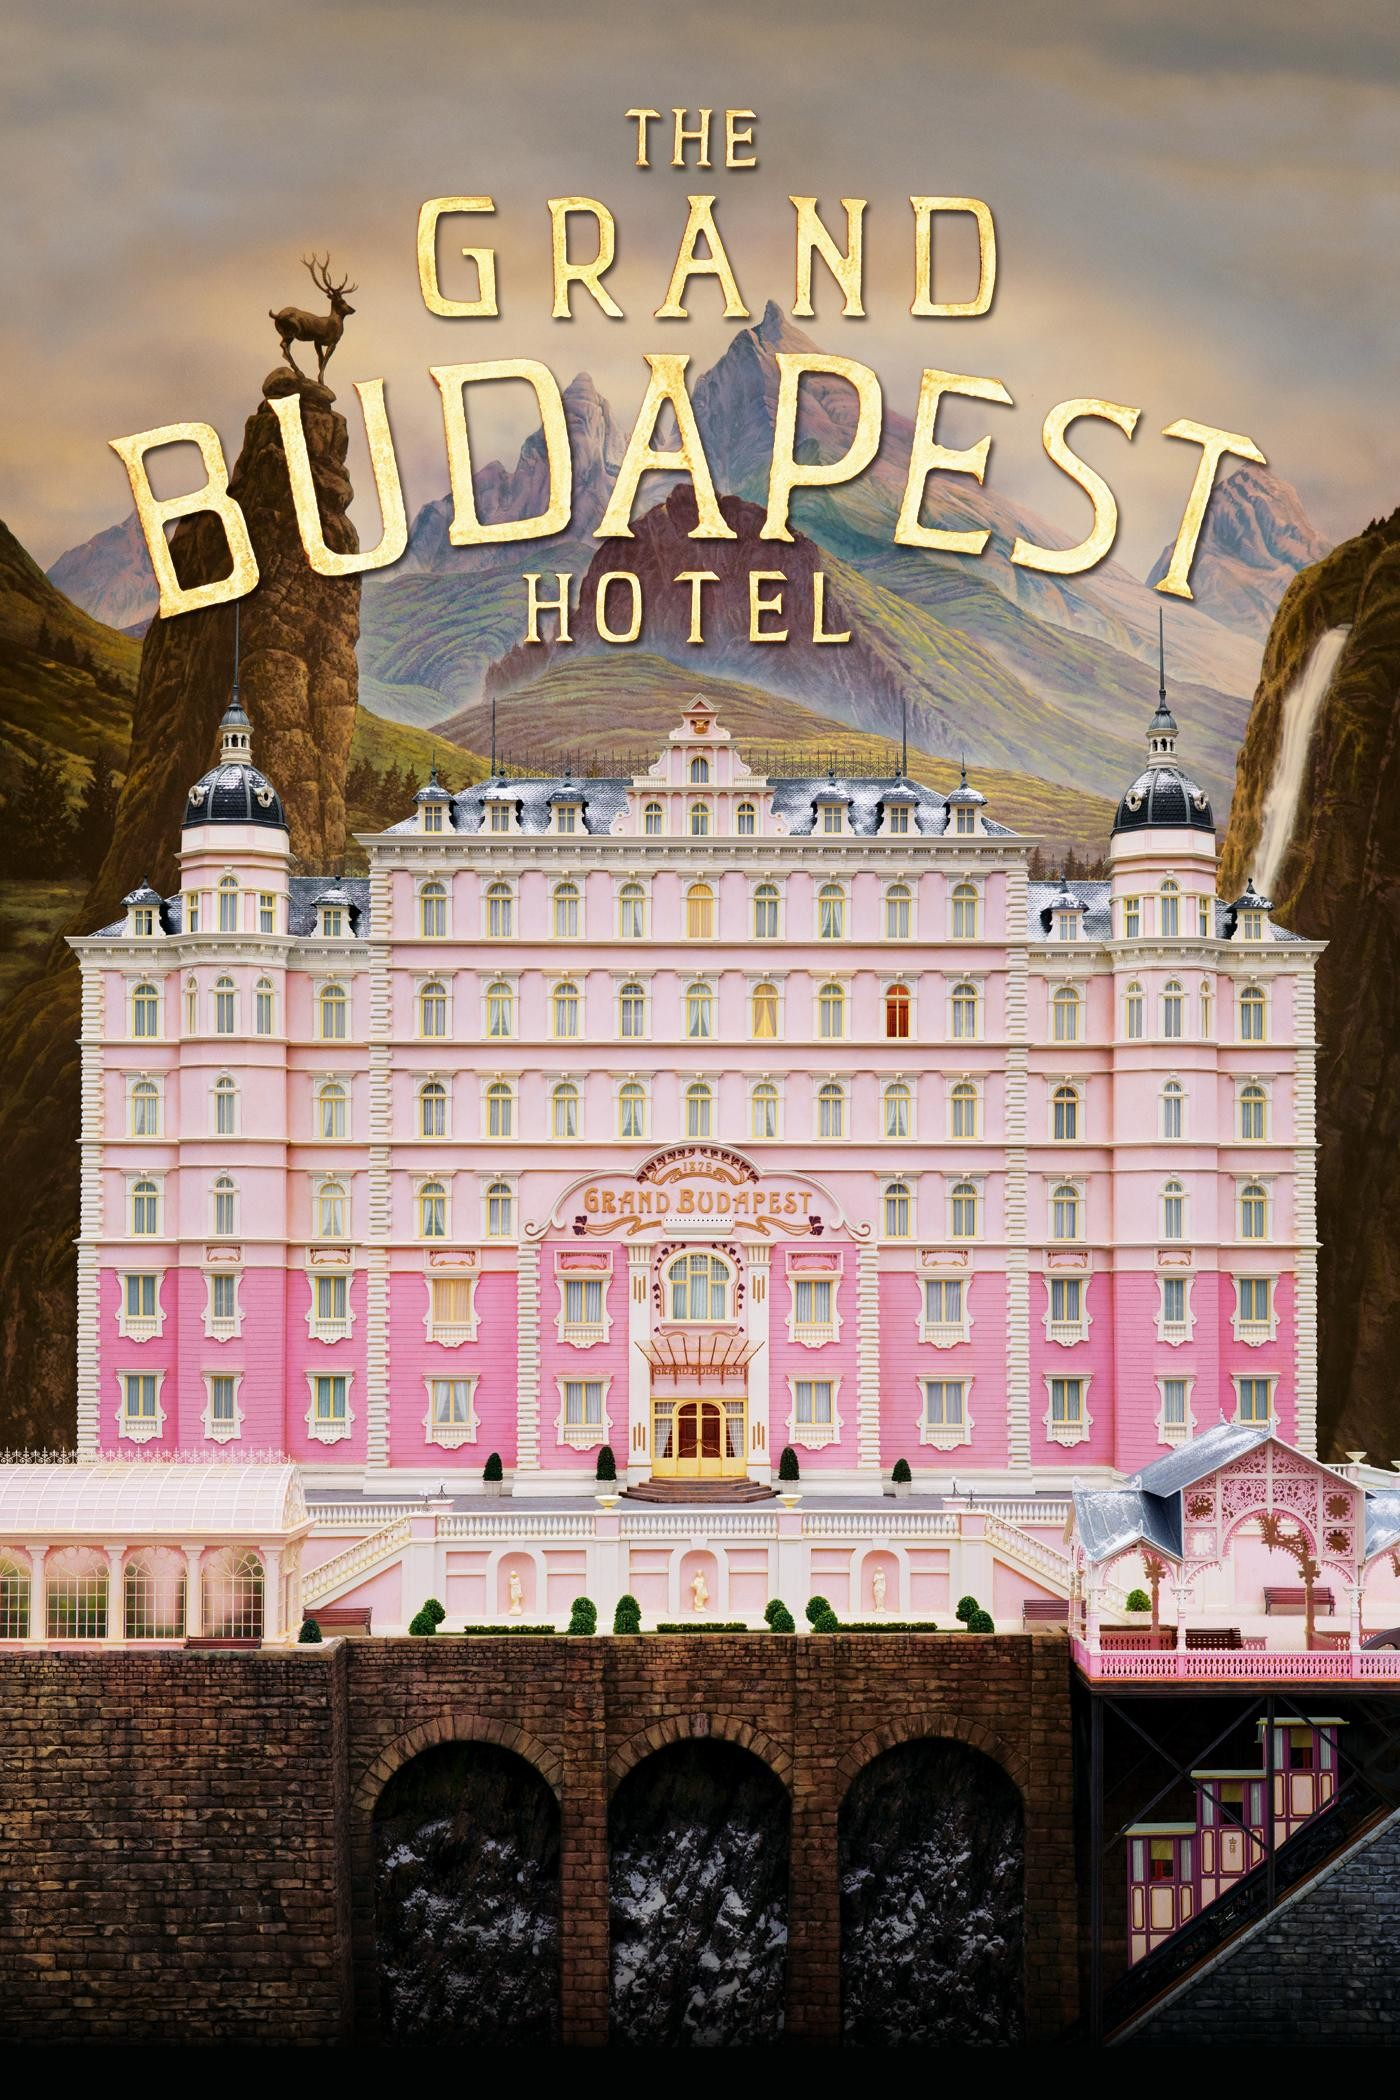 The-Grand-Budapest-Hotel-Such-an-enjoyable-film-